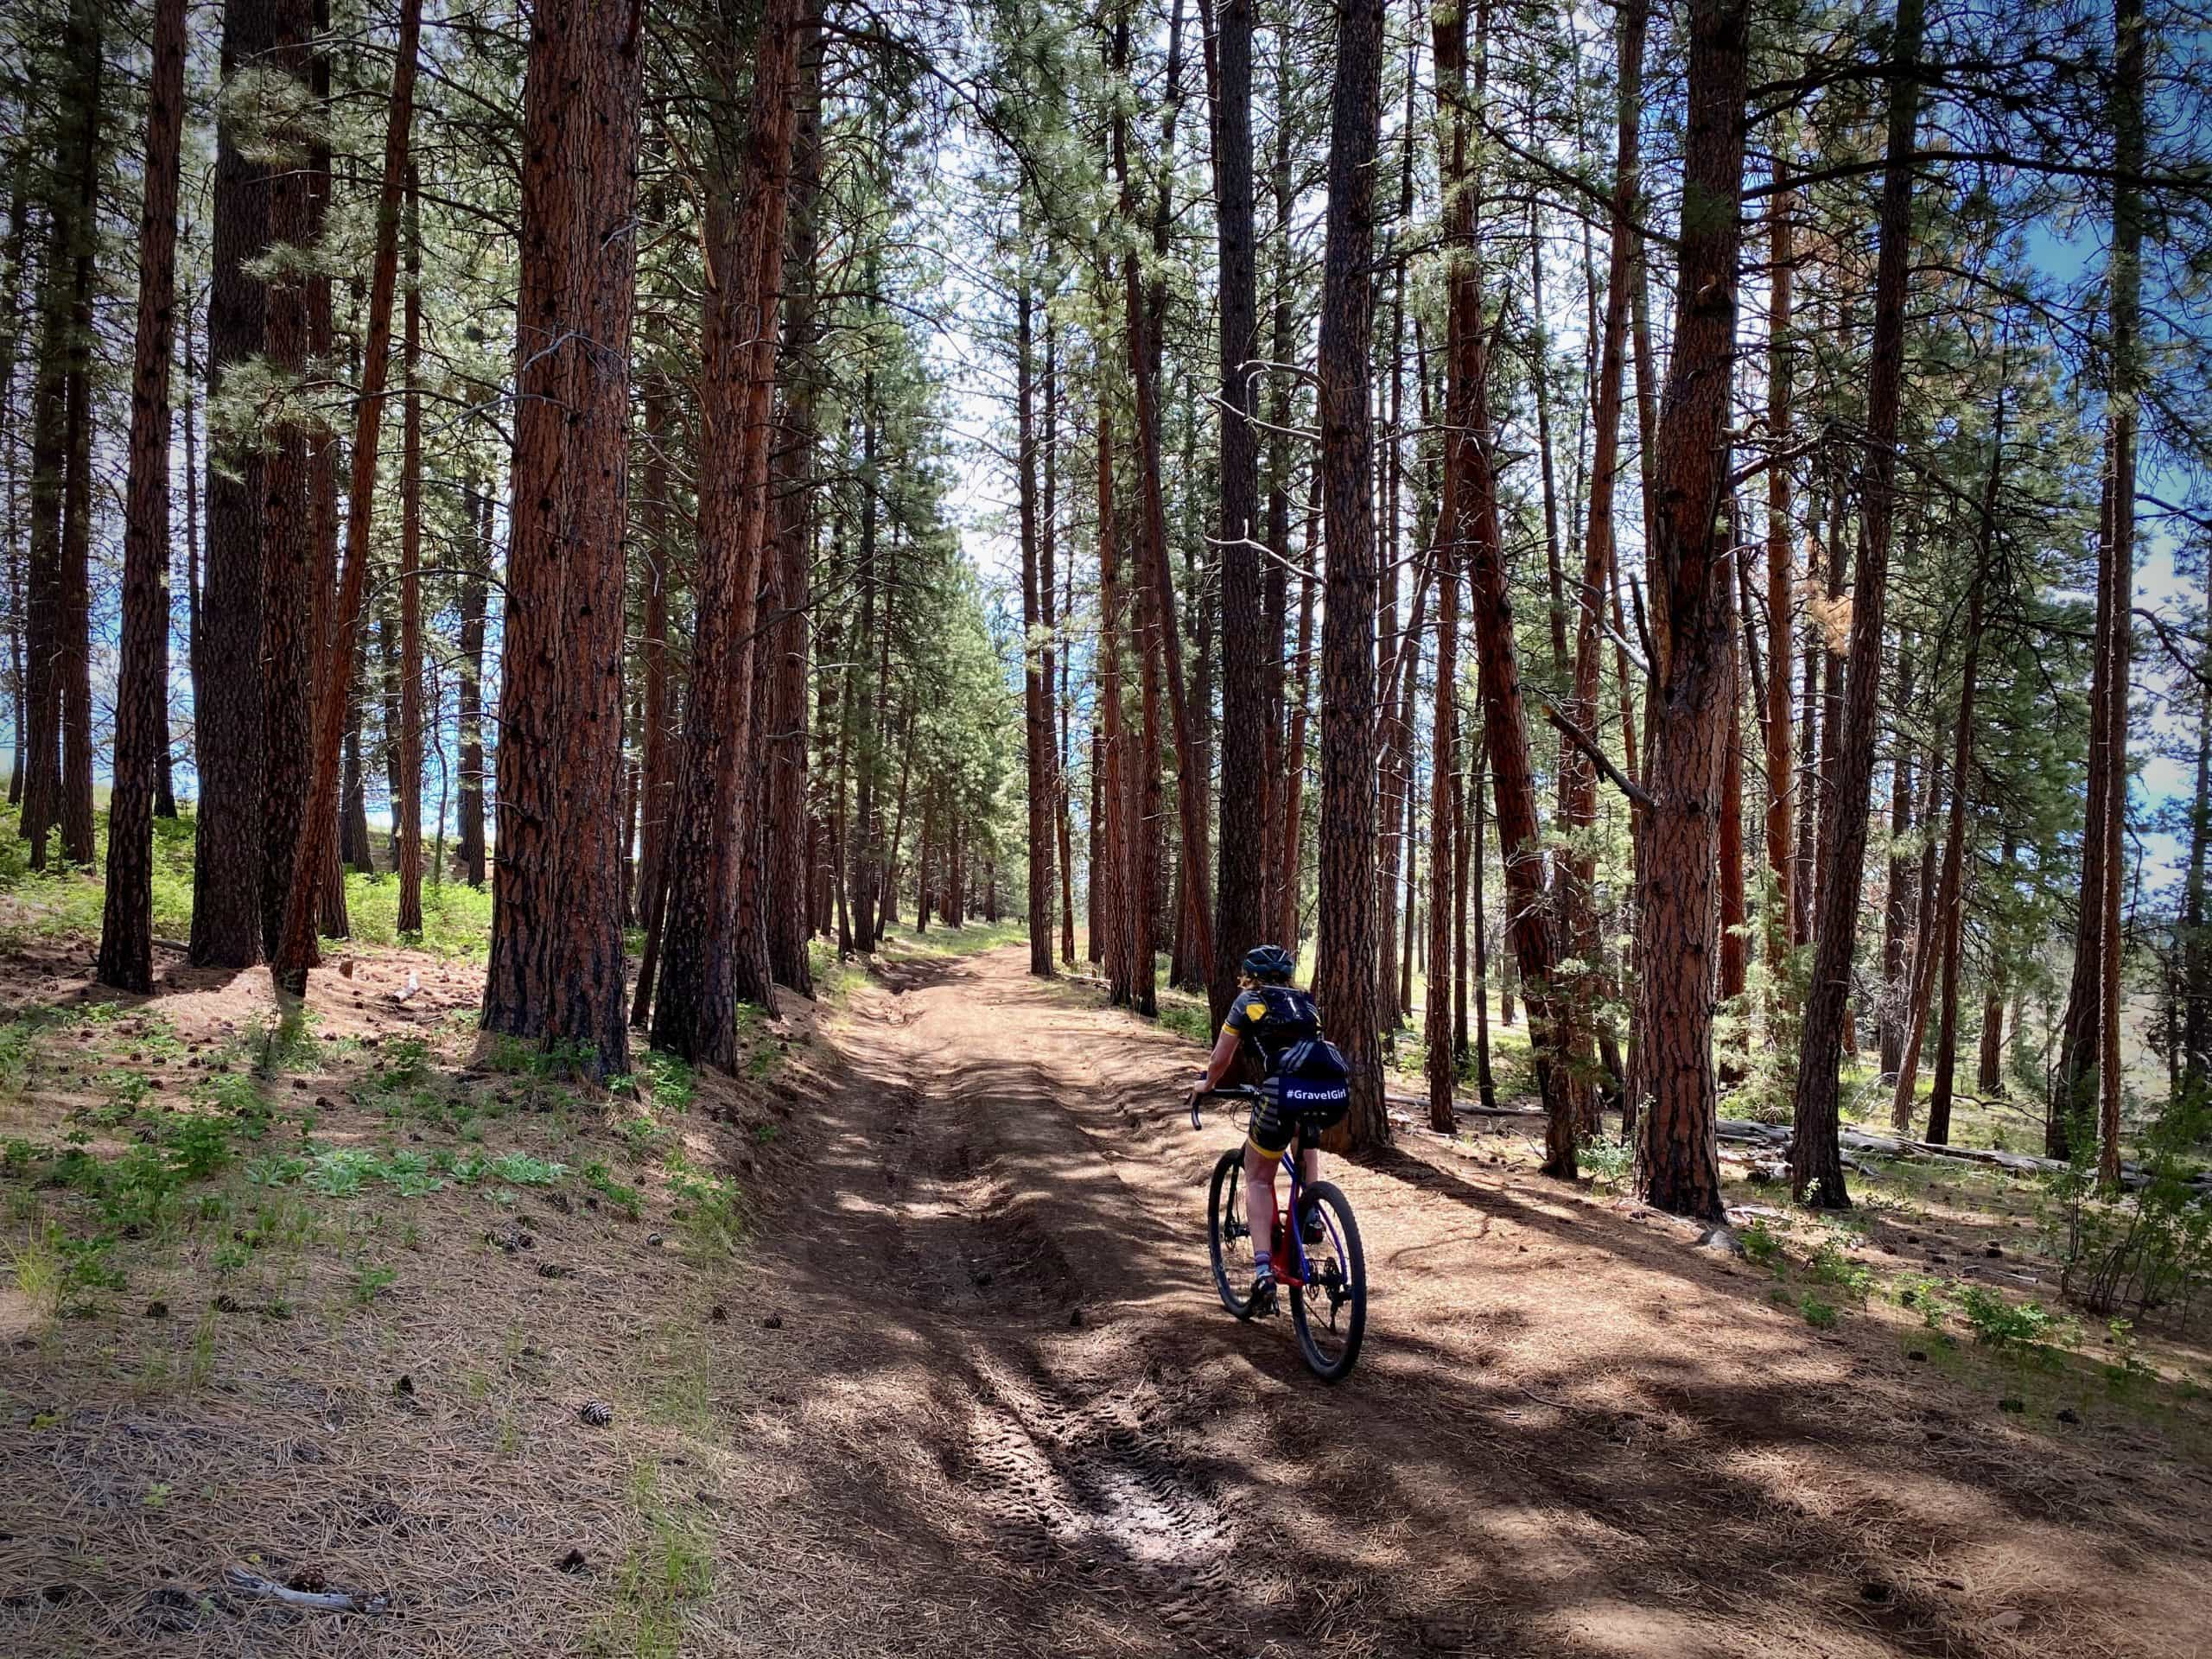 Cyclist riding amongst tall Ponderosa trees and loamy soil in Central Oregon.